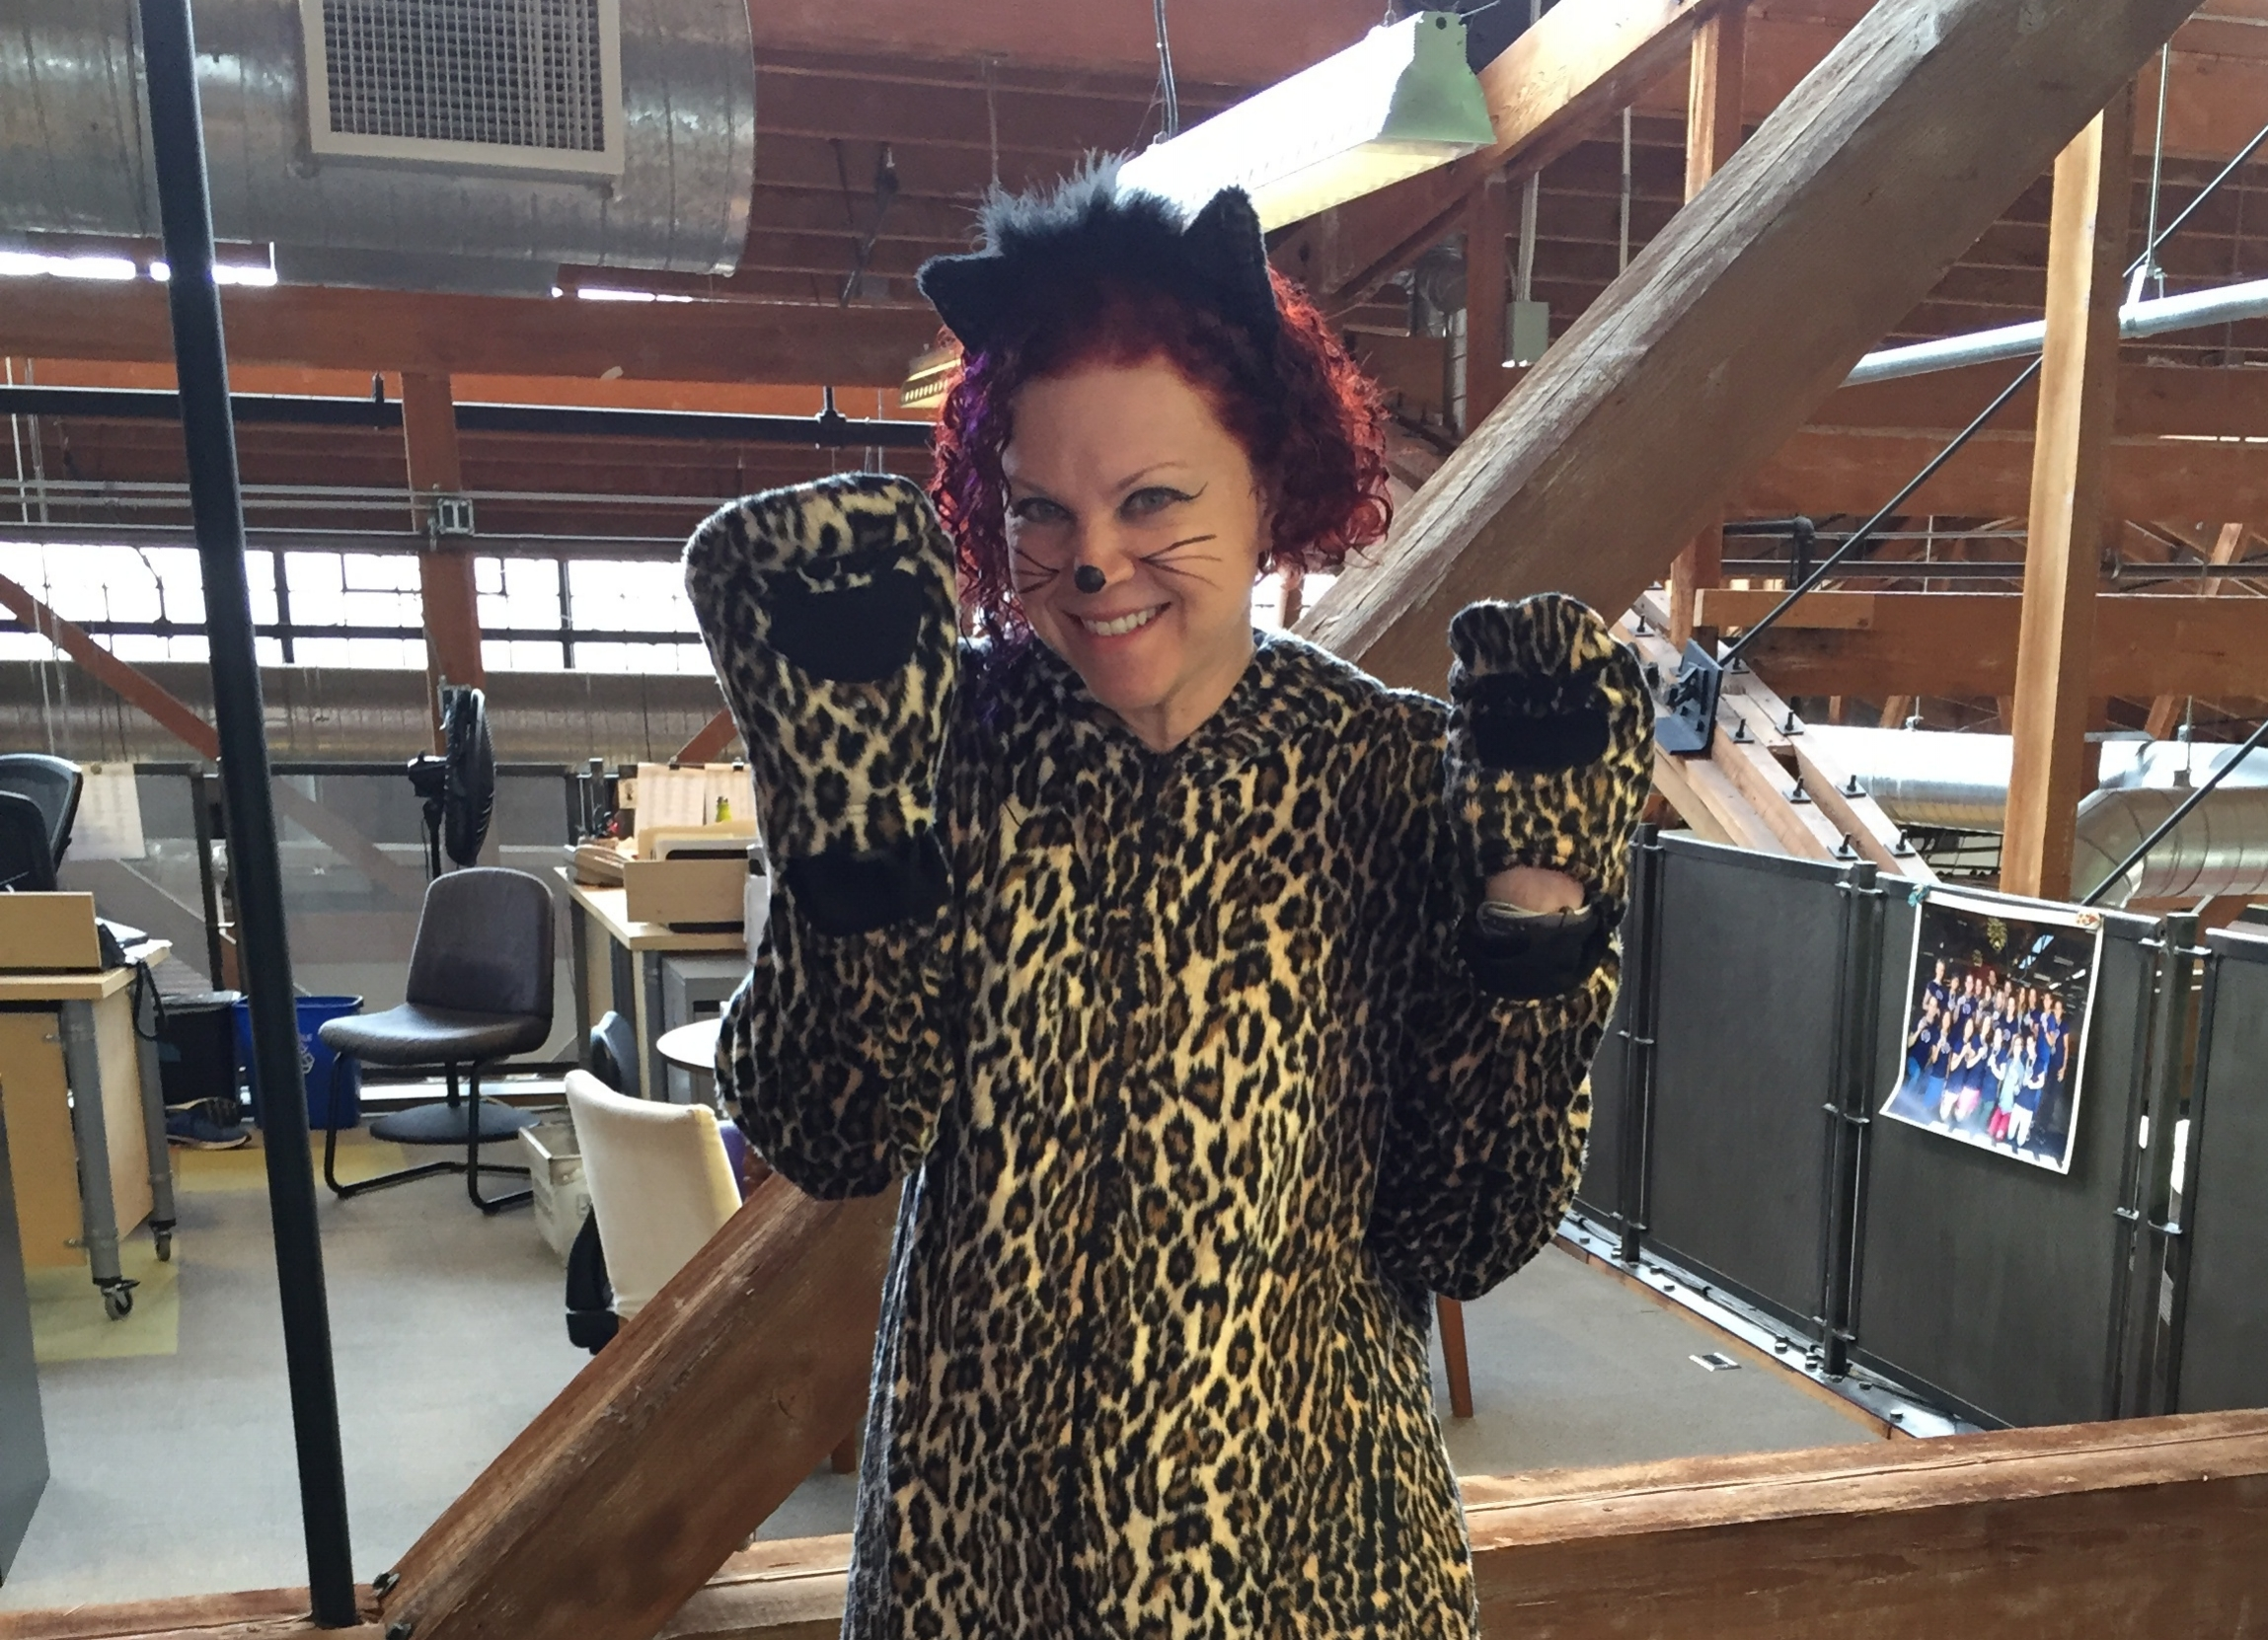 Erin shows her love of cats with her feline themed Halloween costume